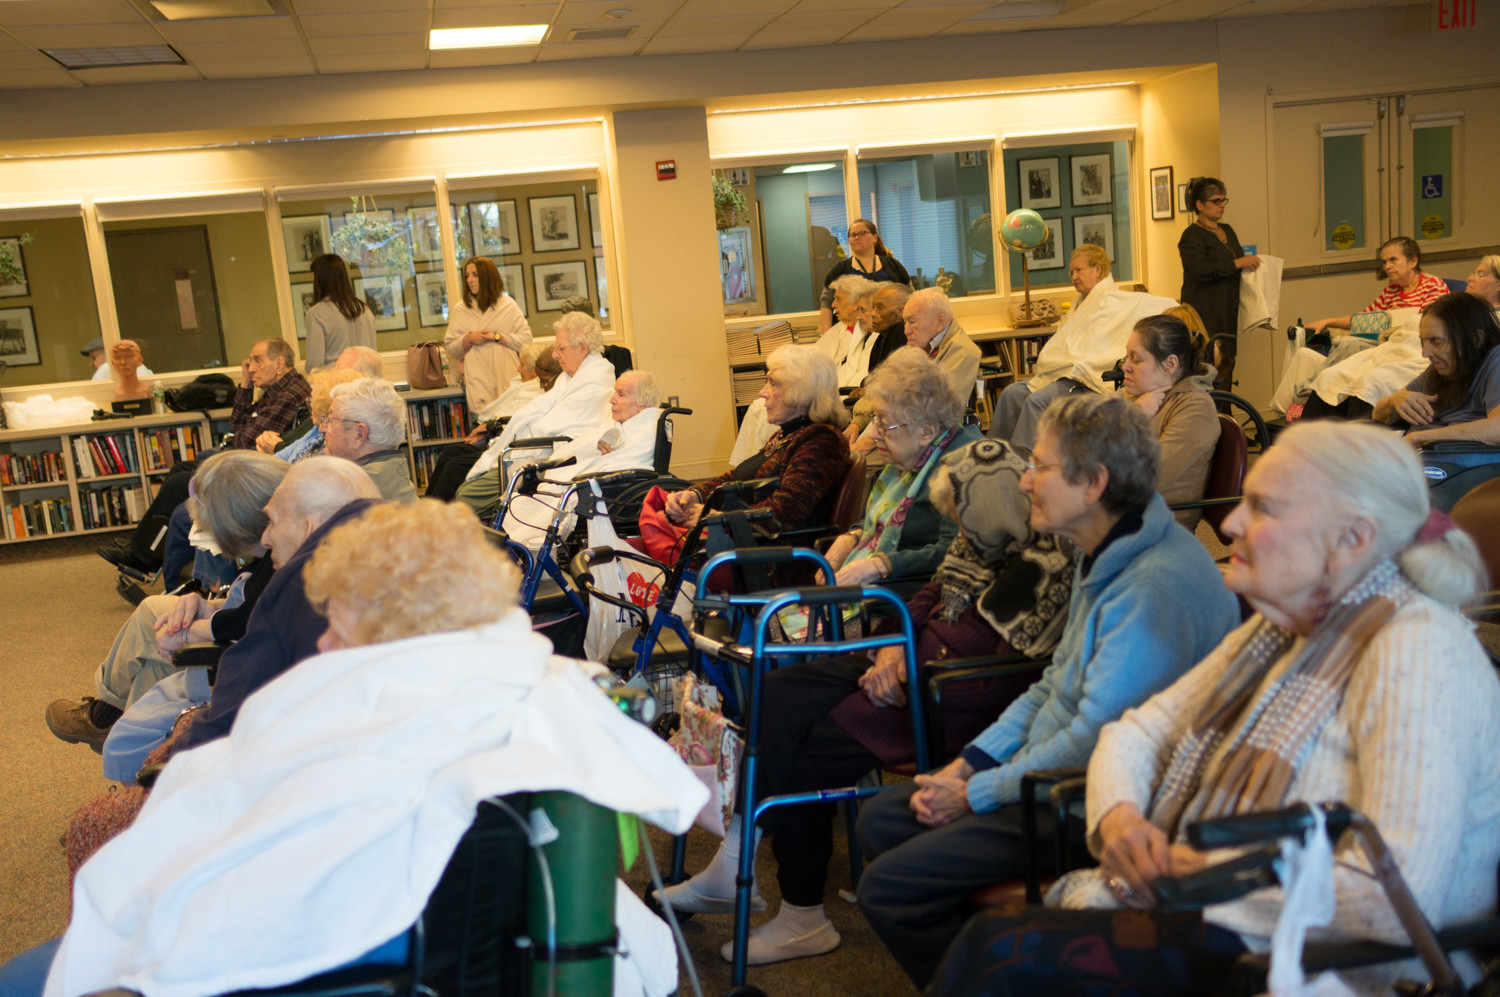 Hebrew Home at Riverdale residents watch a performance by Ani Margaryan and Aleksandr Avetisyan.